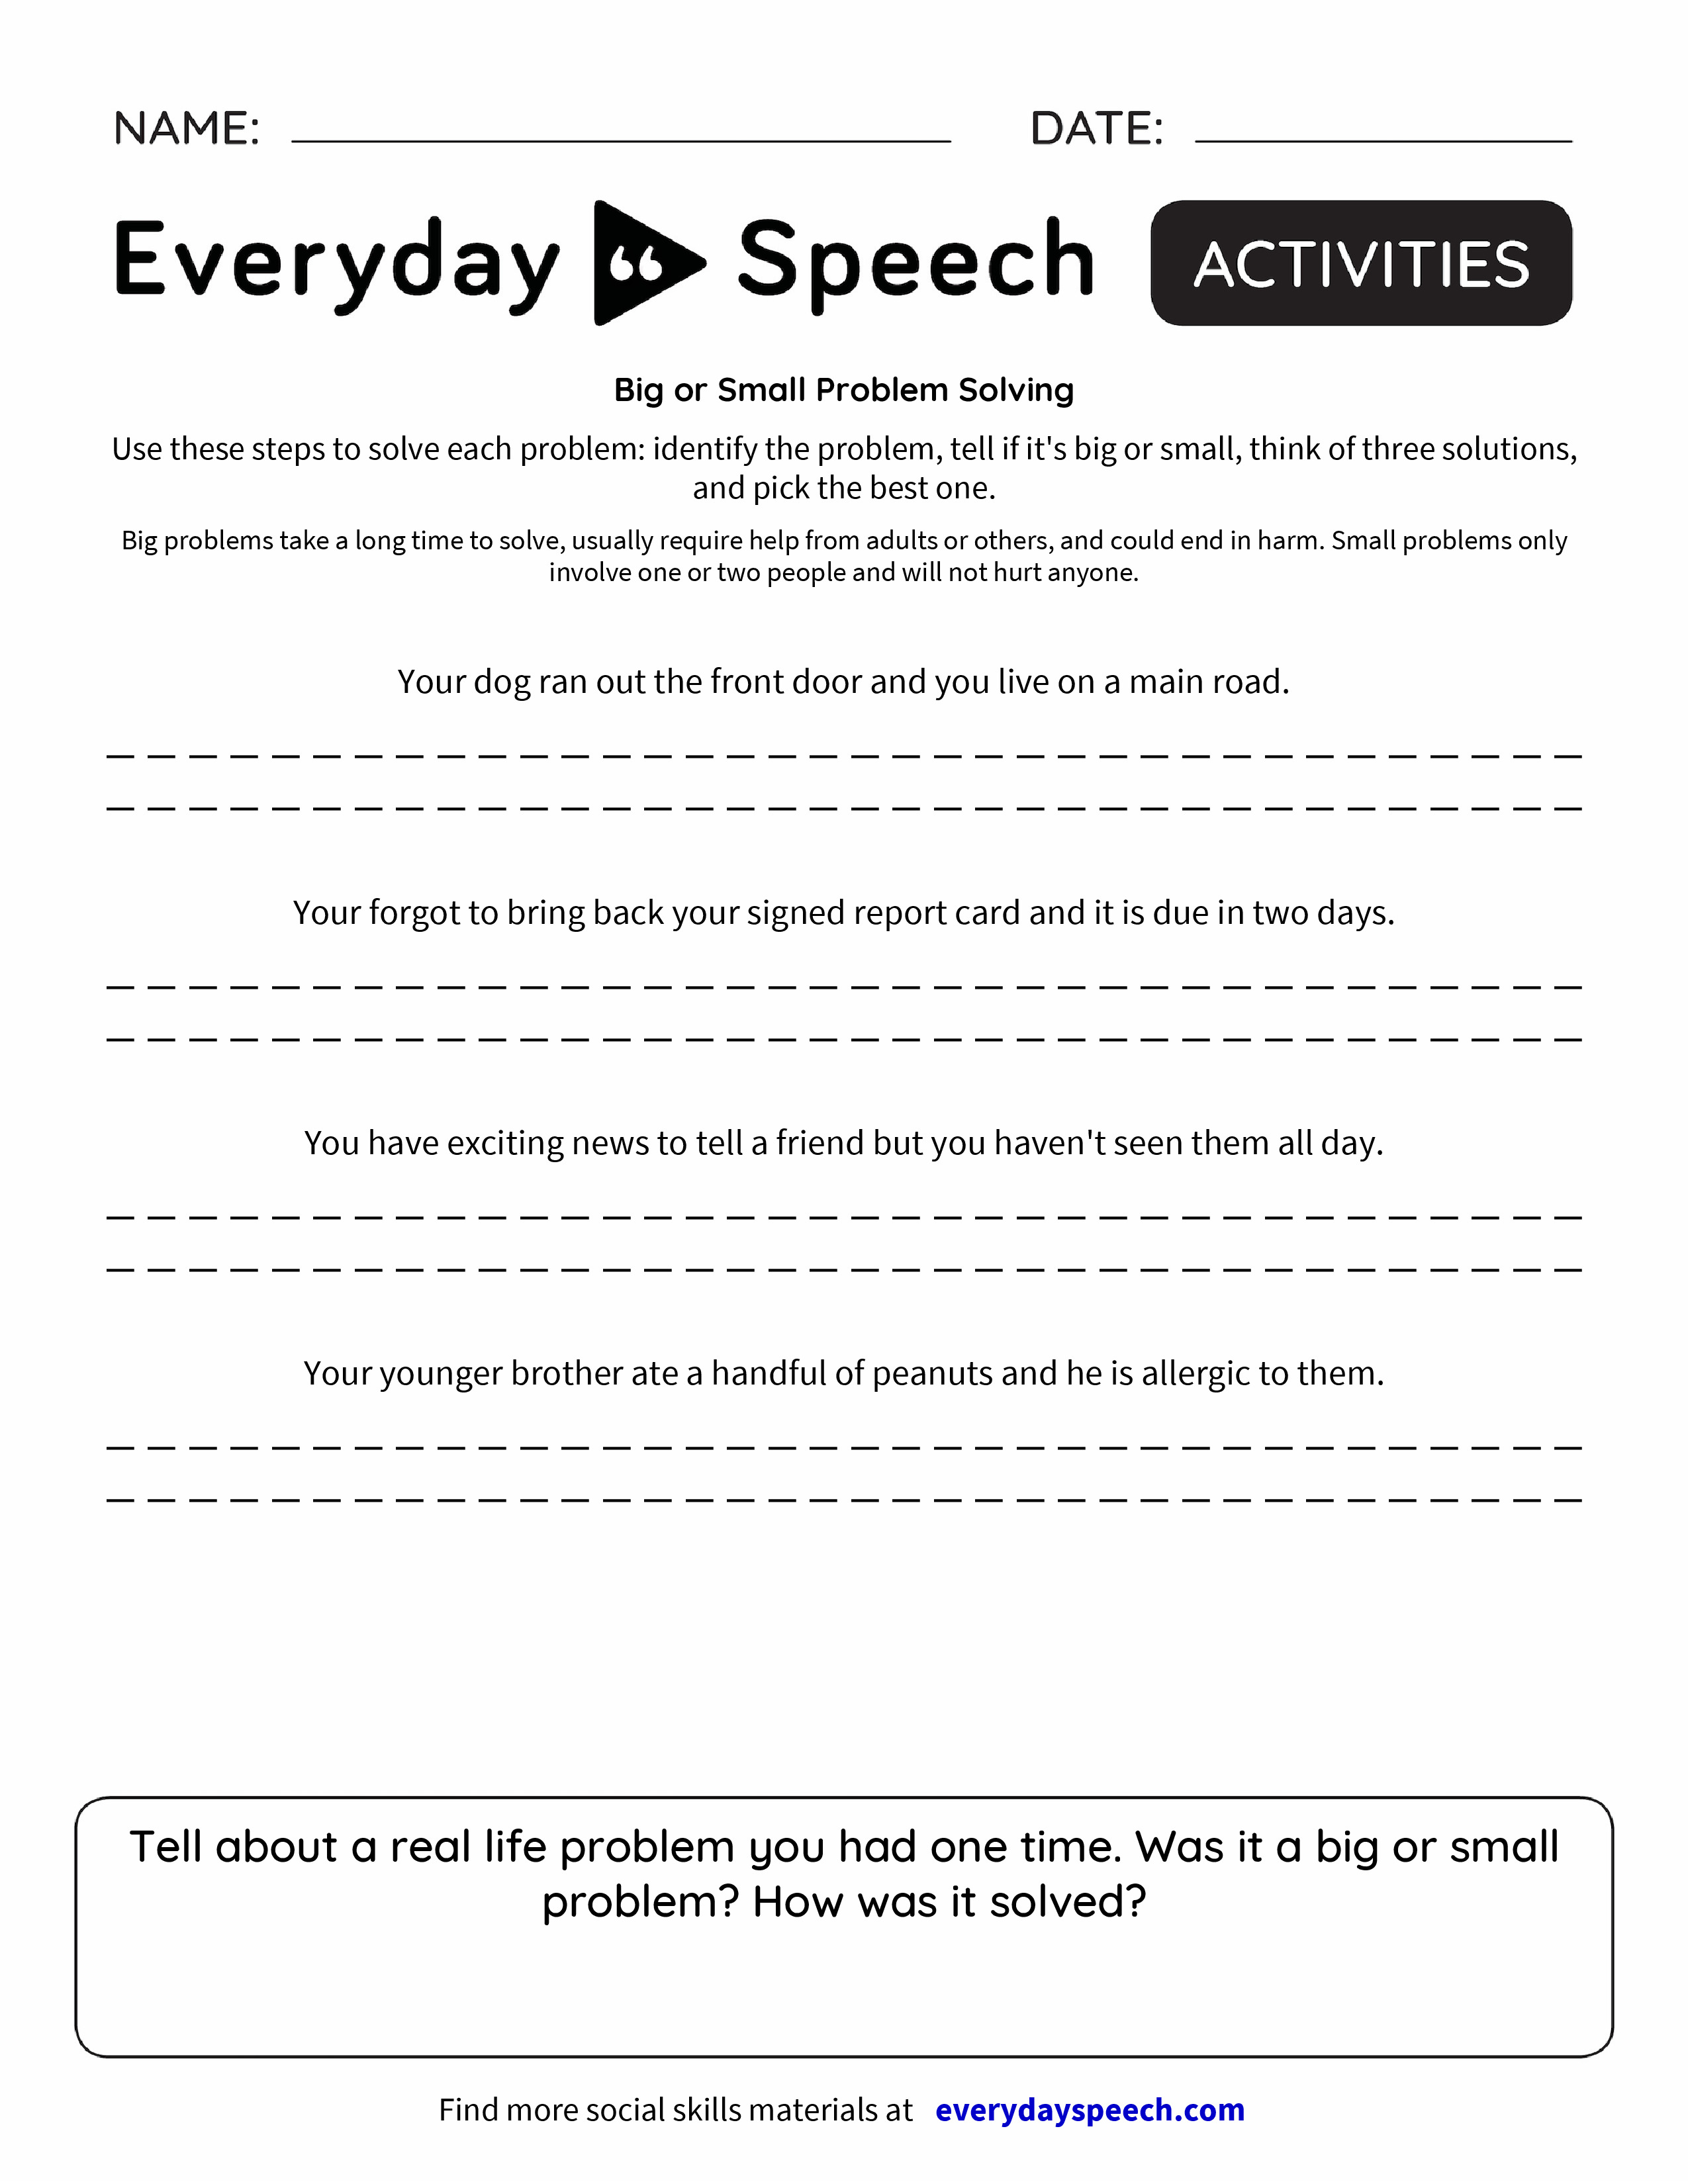 Worksheets Social Problem Solving Worksheets big or small problem solving everyday speech preview